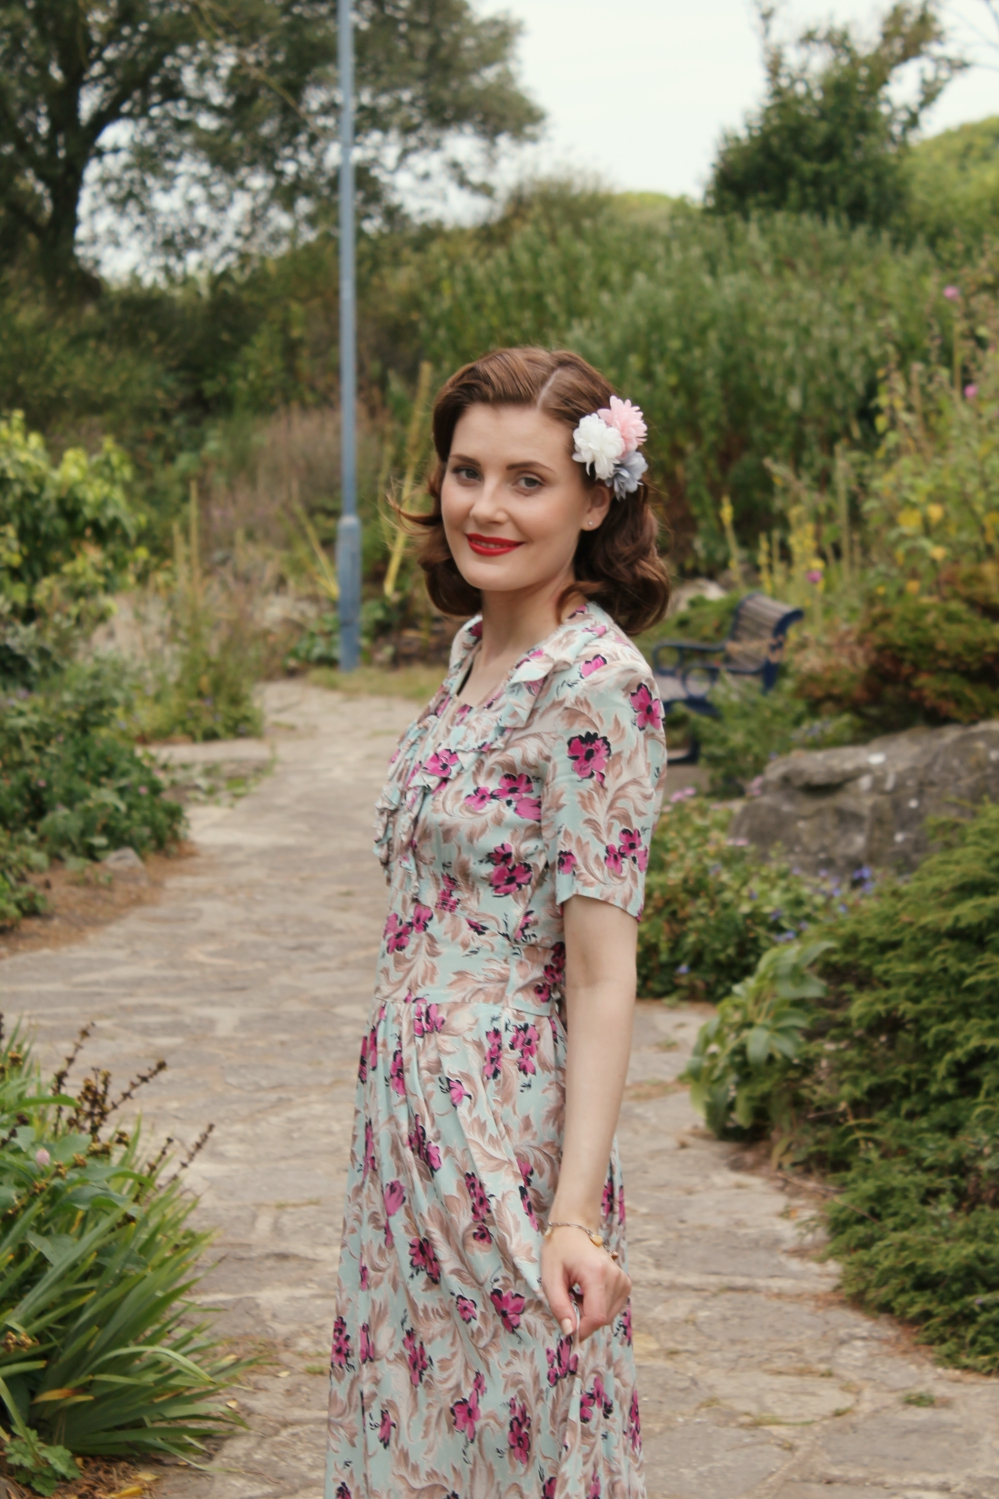 1940s vintage outfit via www.lovebirdsvintage.co.uk